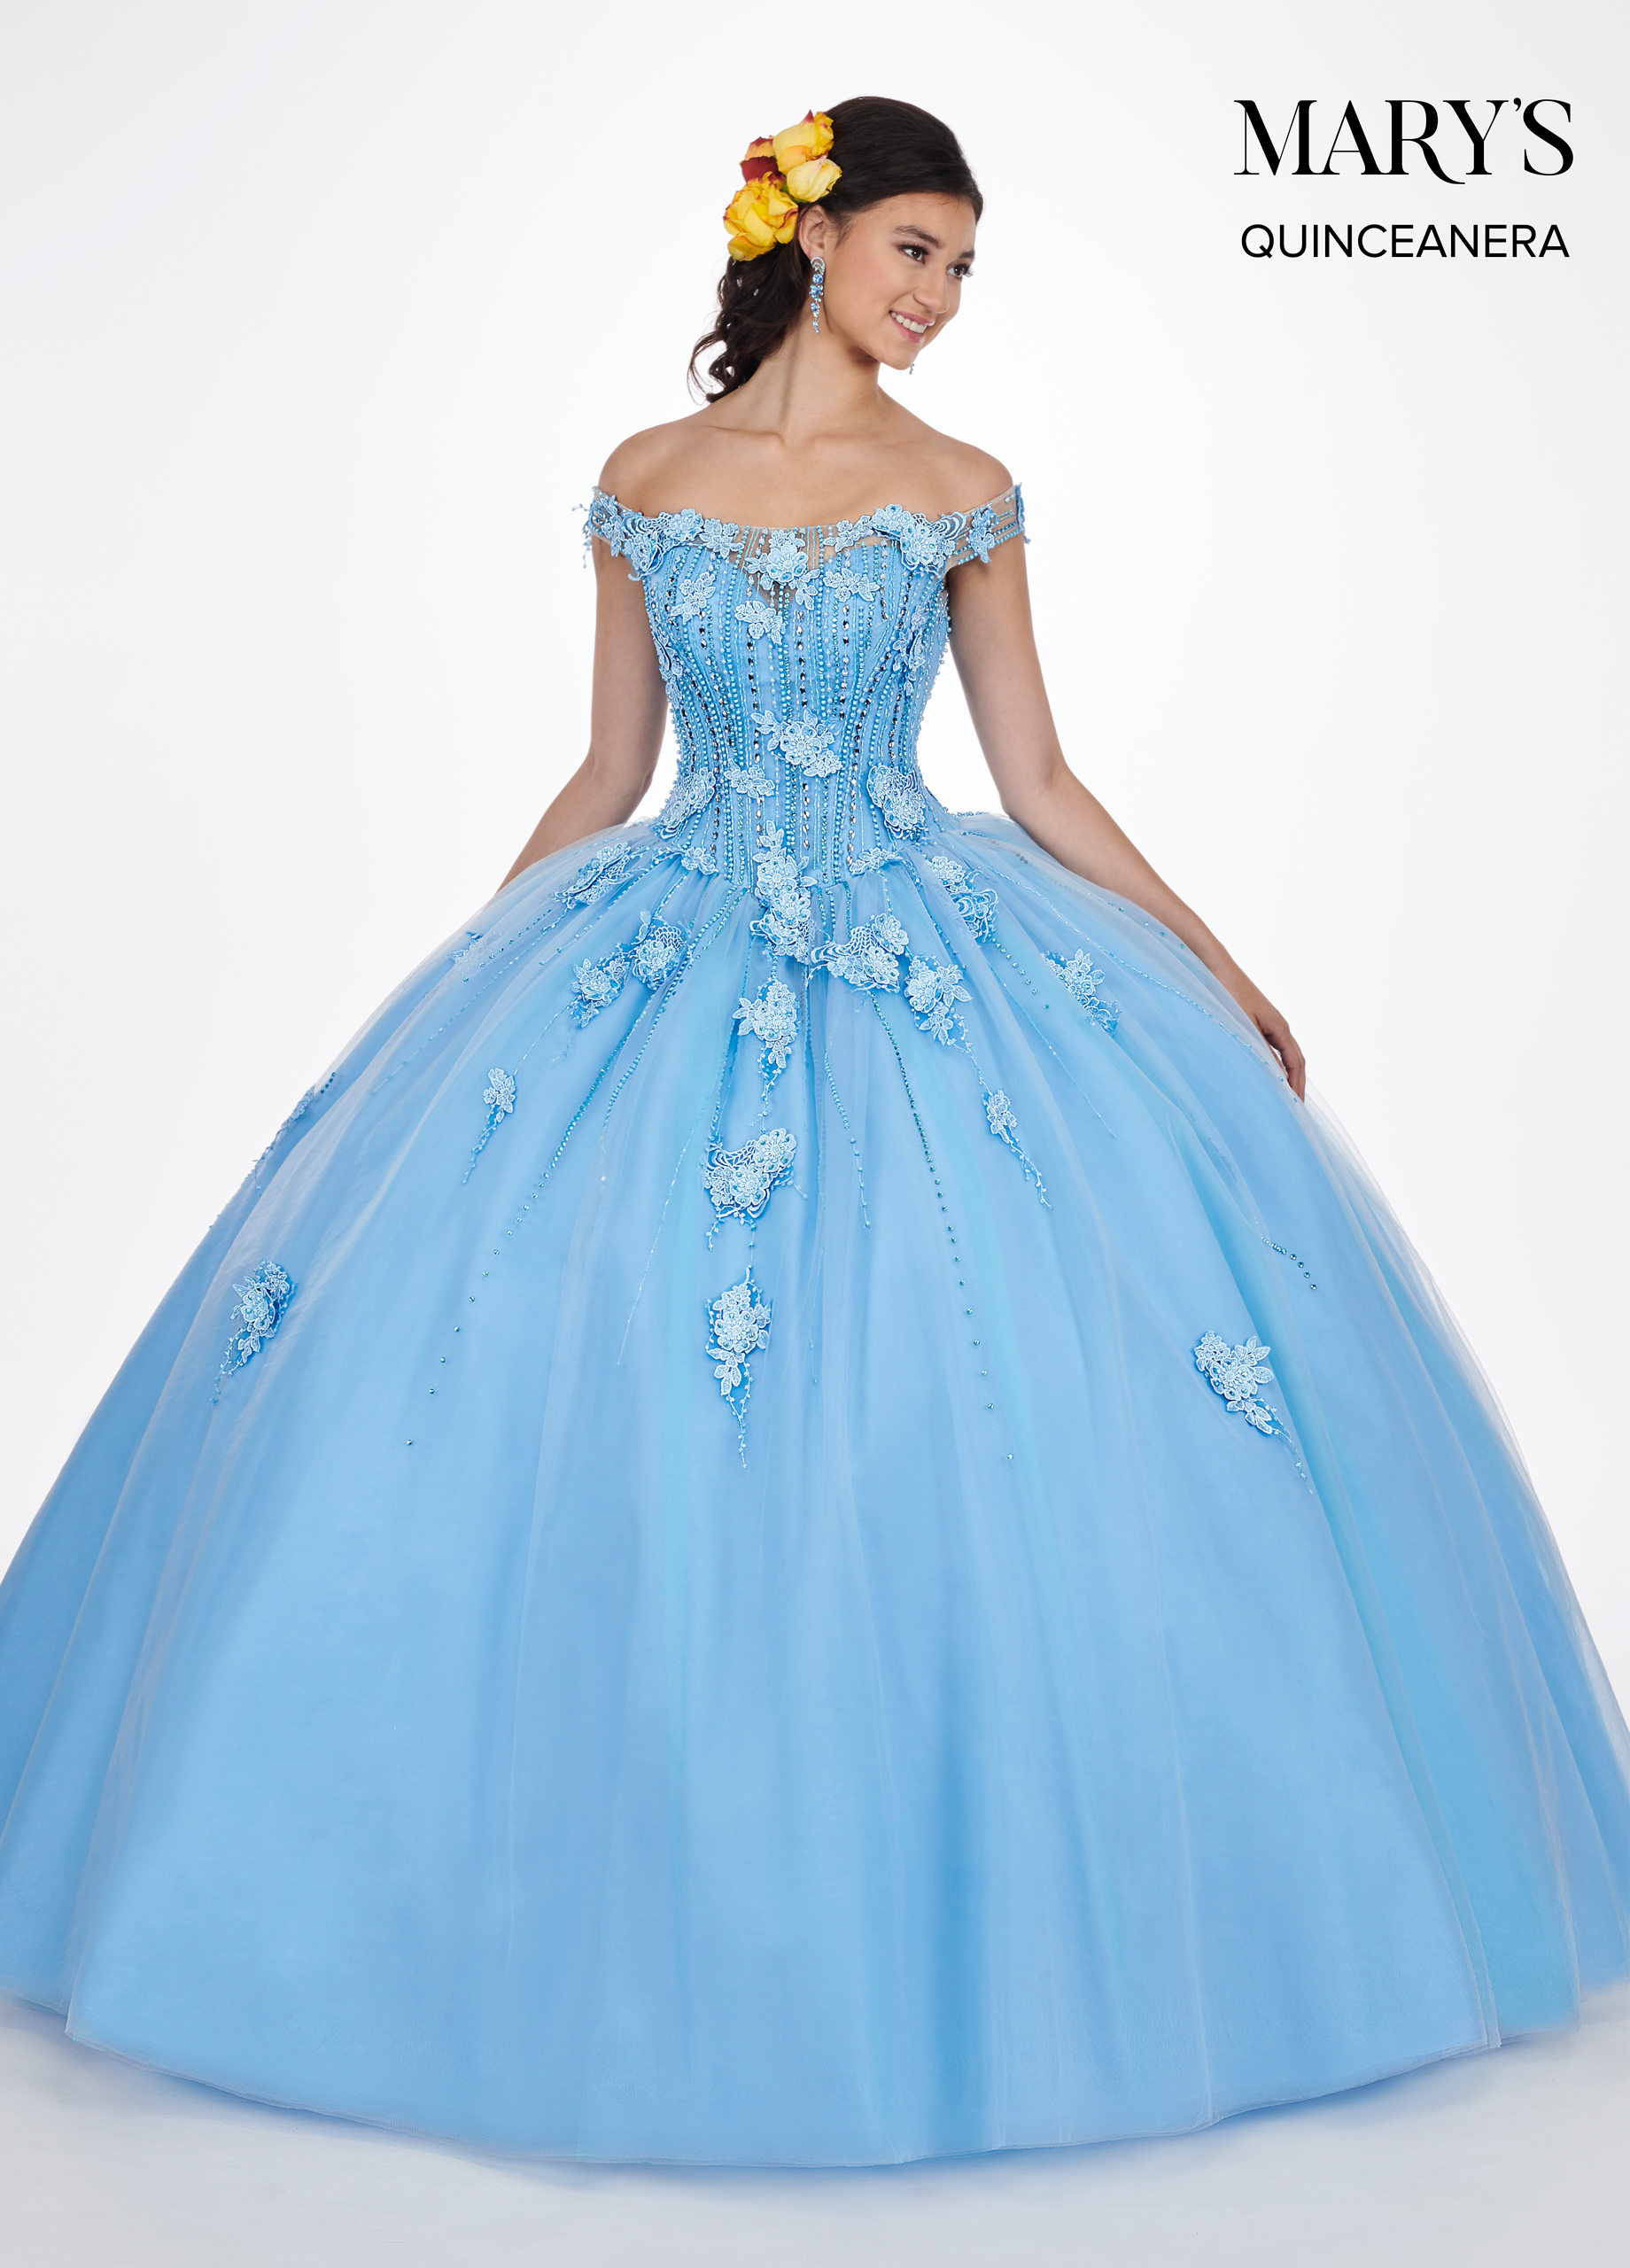 Marys Quinceanera Dresses | Mary's Quinceanera | Style - MQ2069